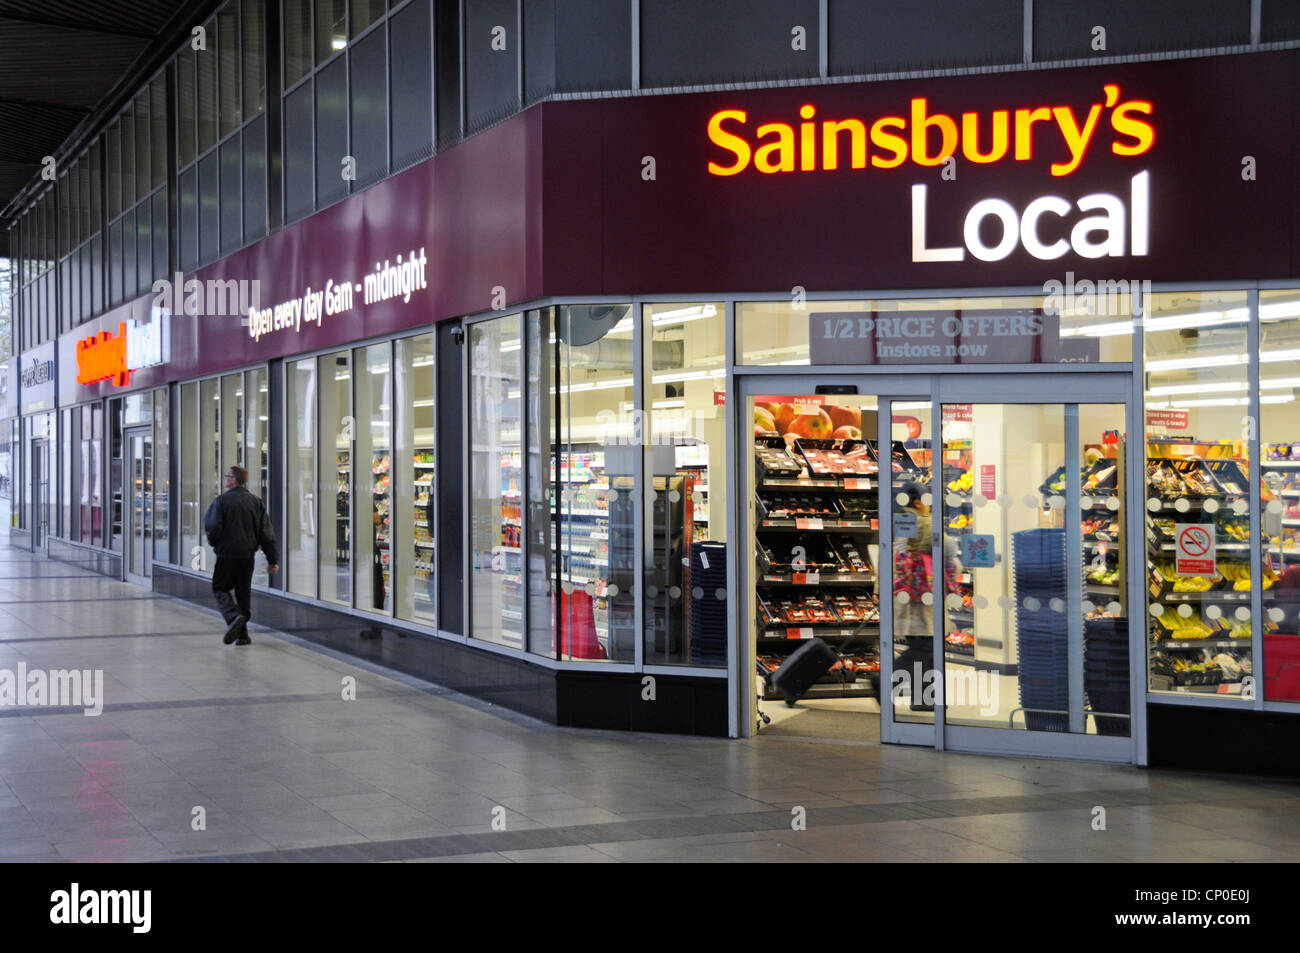 Early morning view of Sainsburys Local supermarket convenience store shop front adjacent to Euston train station - Stock Image